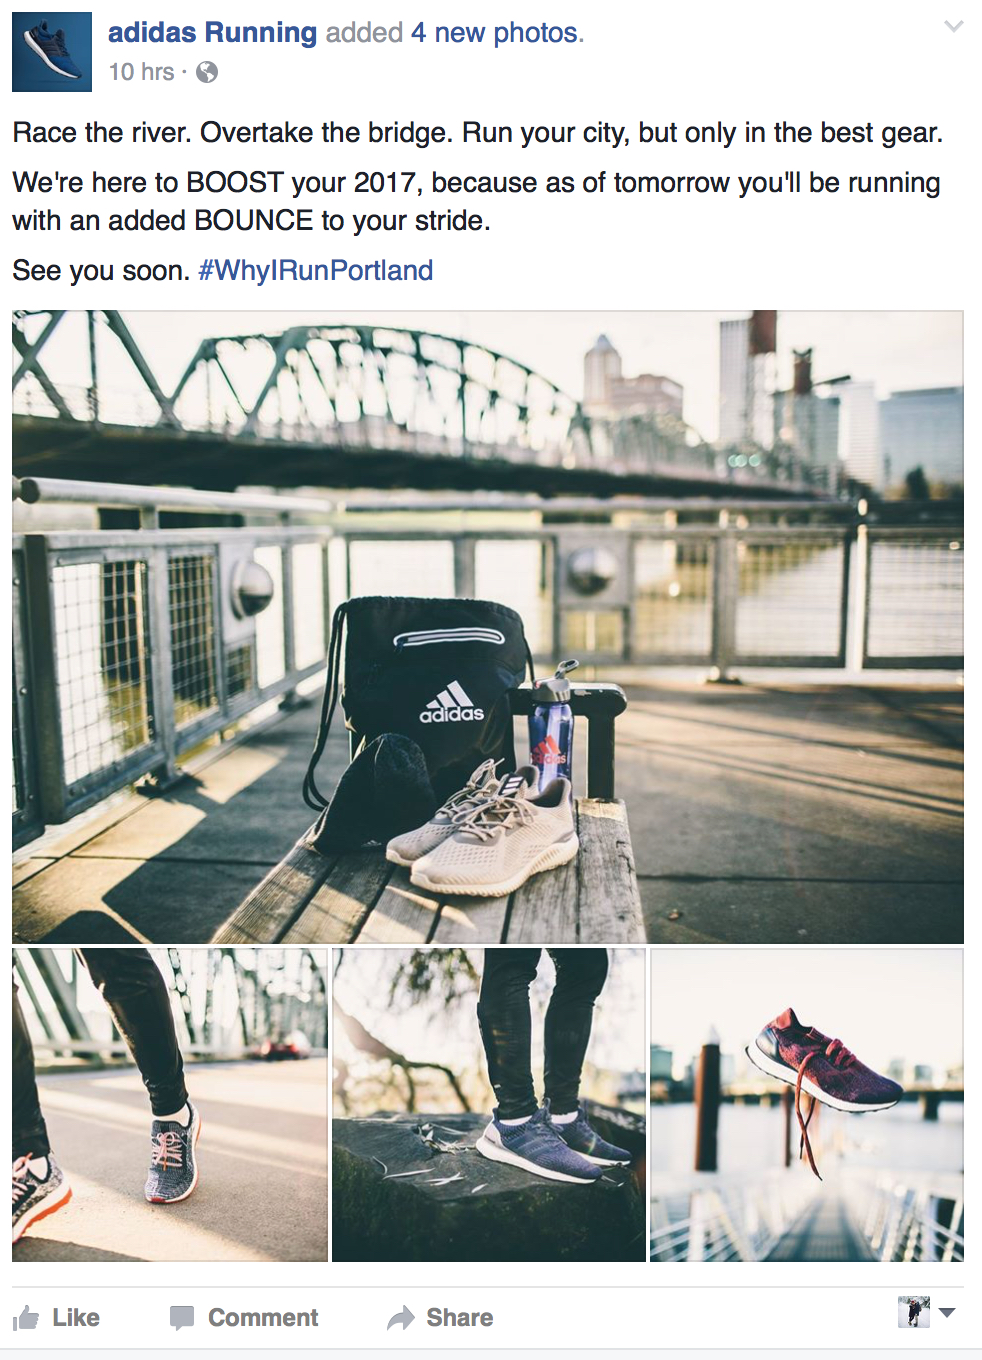 adidas Running Facebook page: #WhyIRunPortland Campaign - January 2017